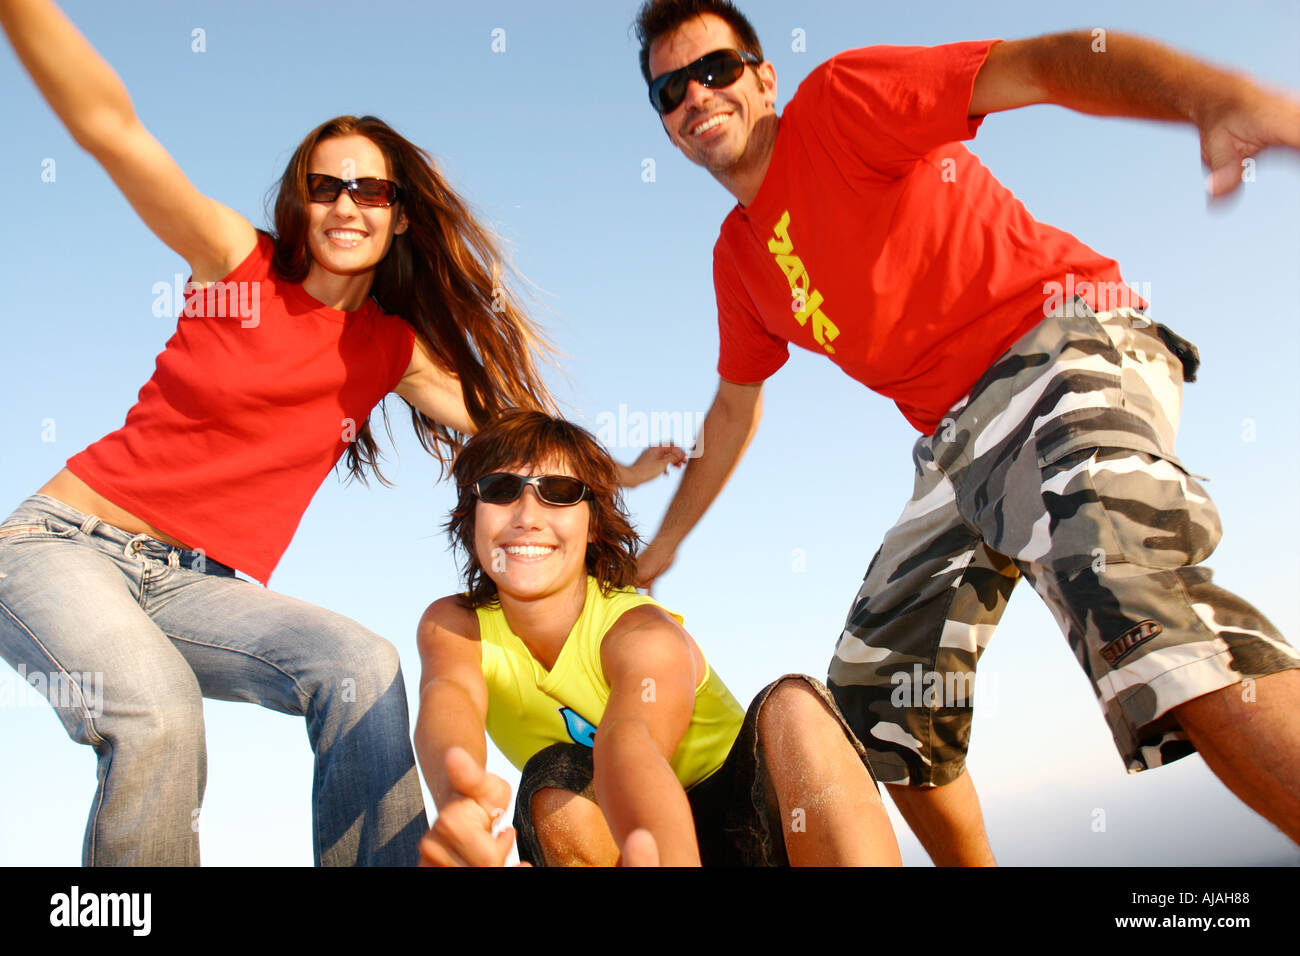 Fun group of friends in colourful urban clothes - Stock Image